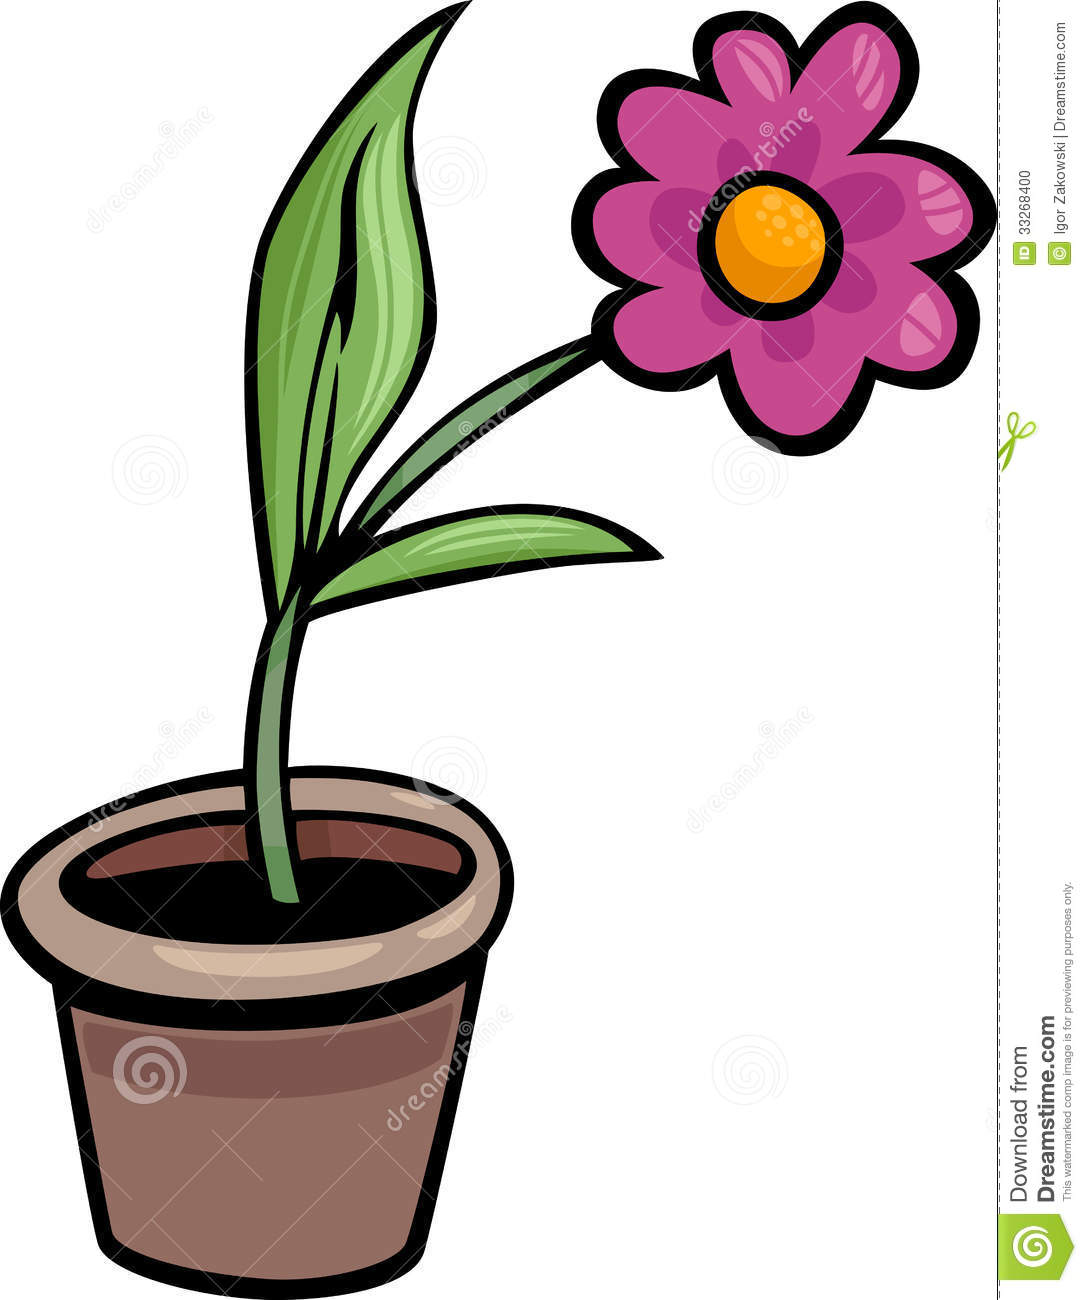 clipart flower in pot - photo #16